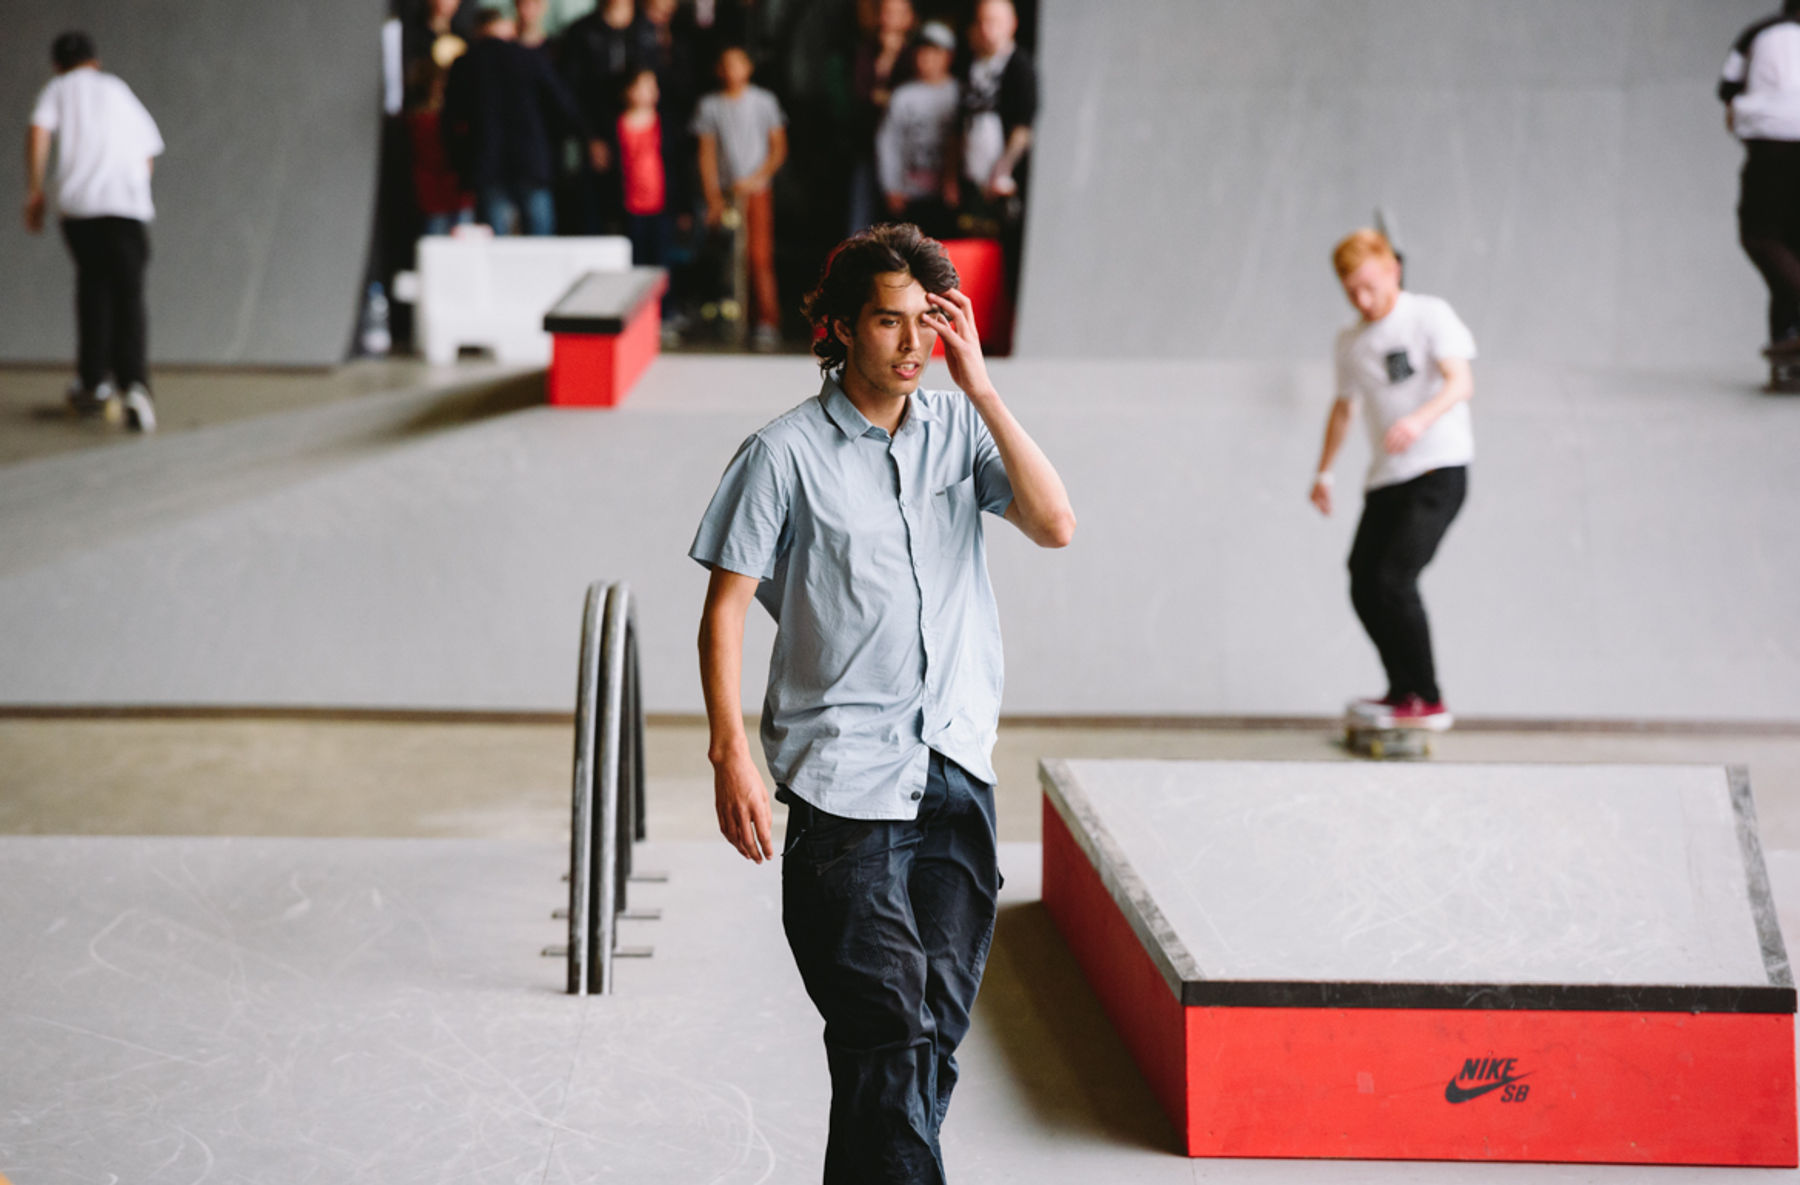 _IHC4647e-Tom-Knox-Nike-SB-London-AM-Day-1-June-2015-Photographer-Maksim-Kalanep